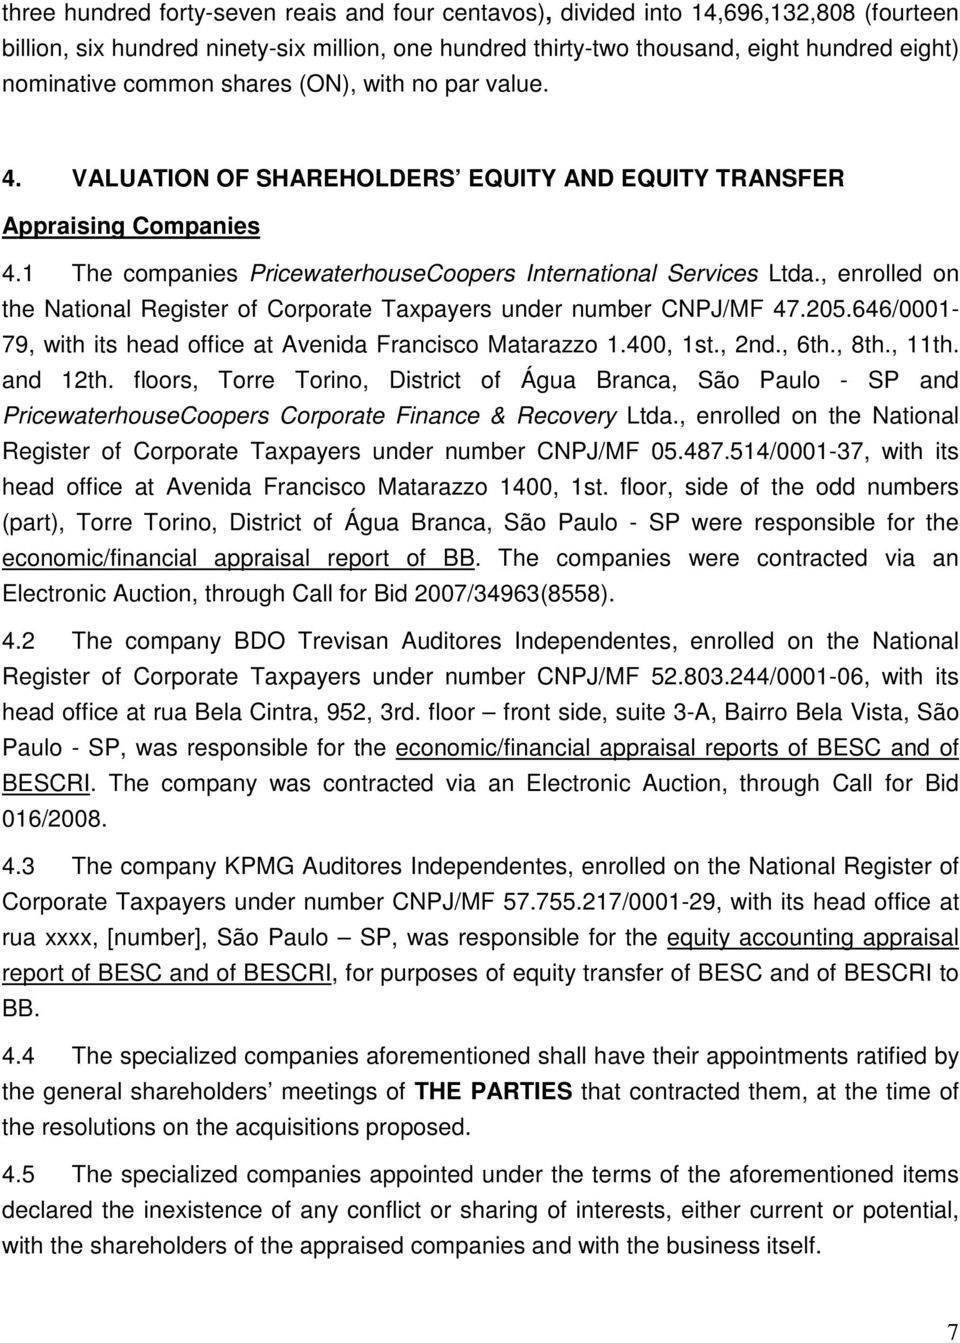 , enrolled on the National Register of Corporate Taxpayers under number CNPJ/MF 47.205.646/0001-79, with its head office at Avenida Francisco Matarazzo 1.400, 1st., 2nd., 6th., 8th., 11th. and 12th.